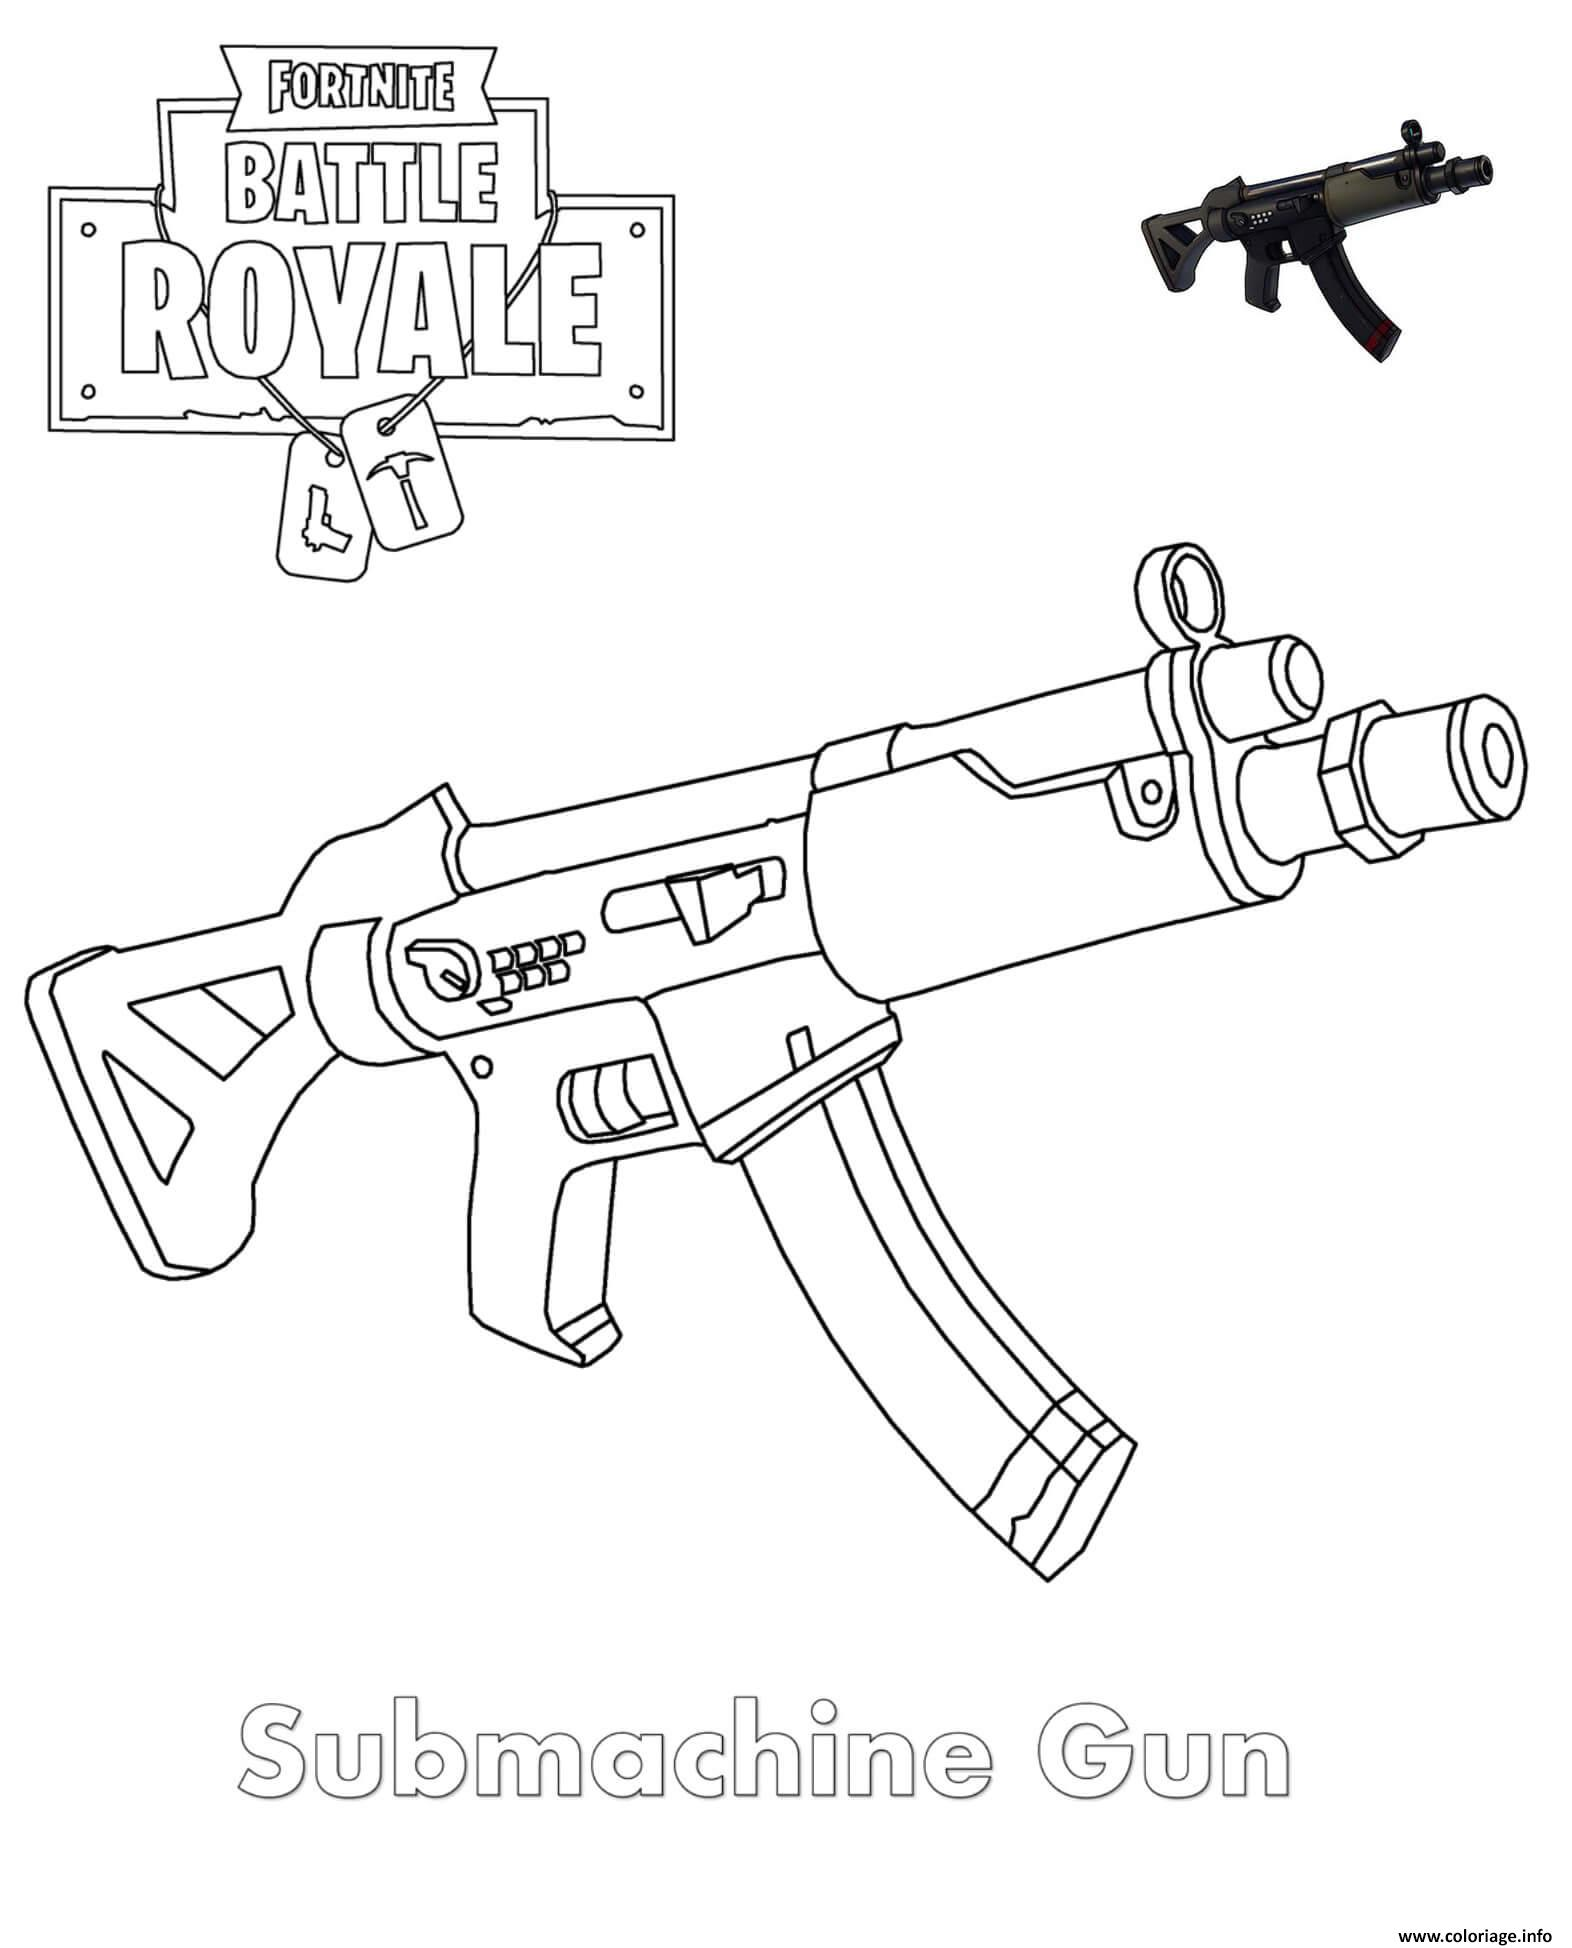 Coloriage Submachine Gun Fortnite Dessin